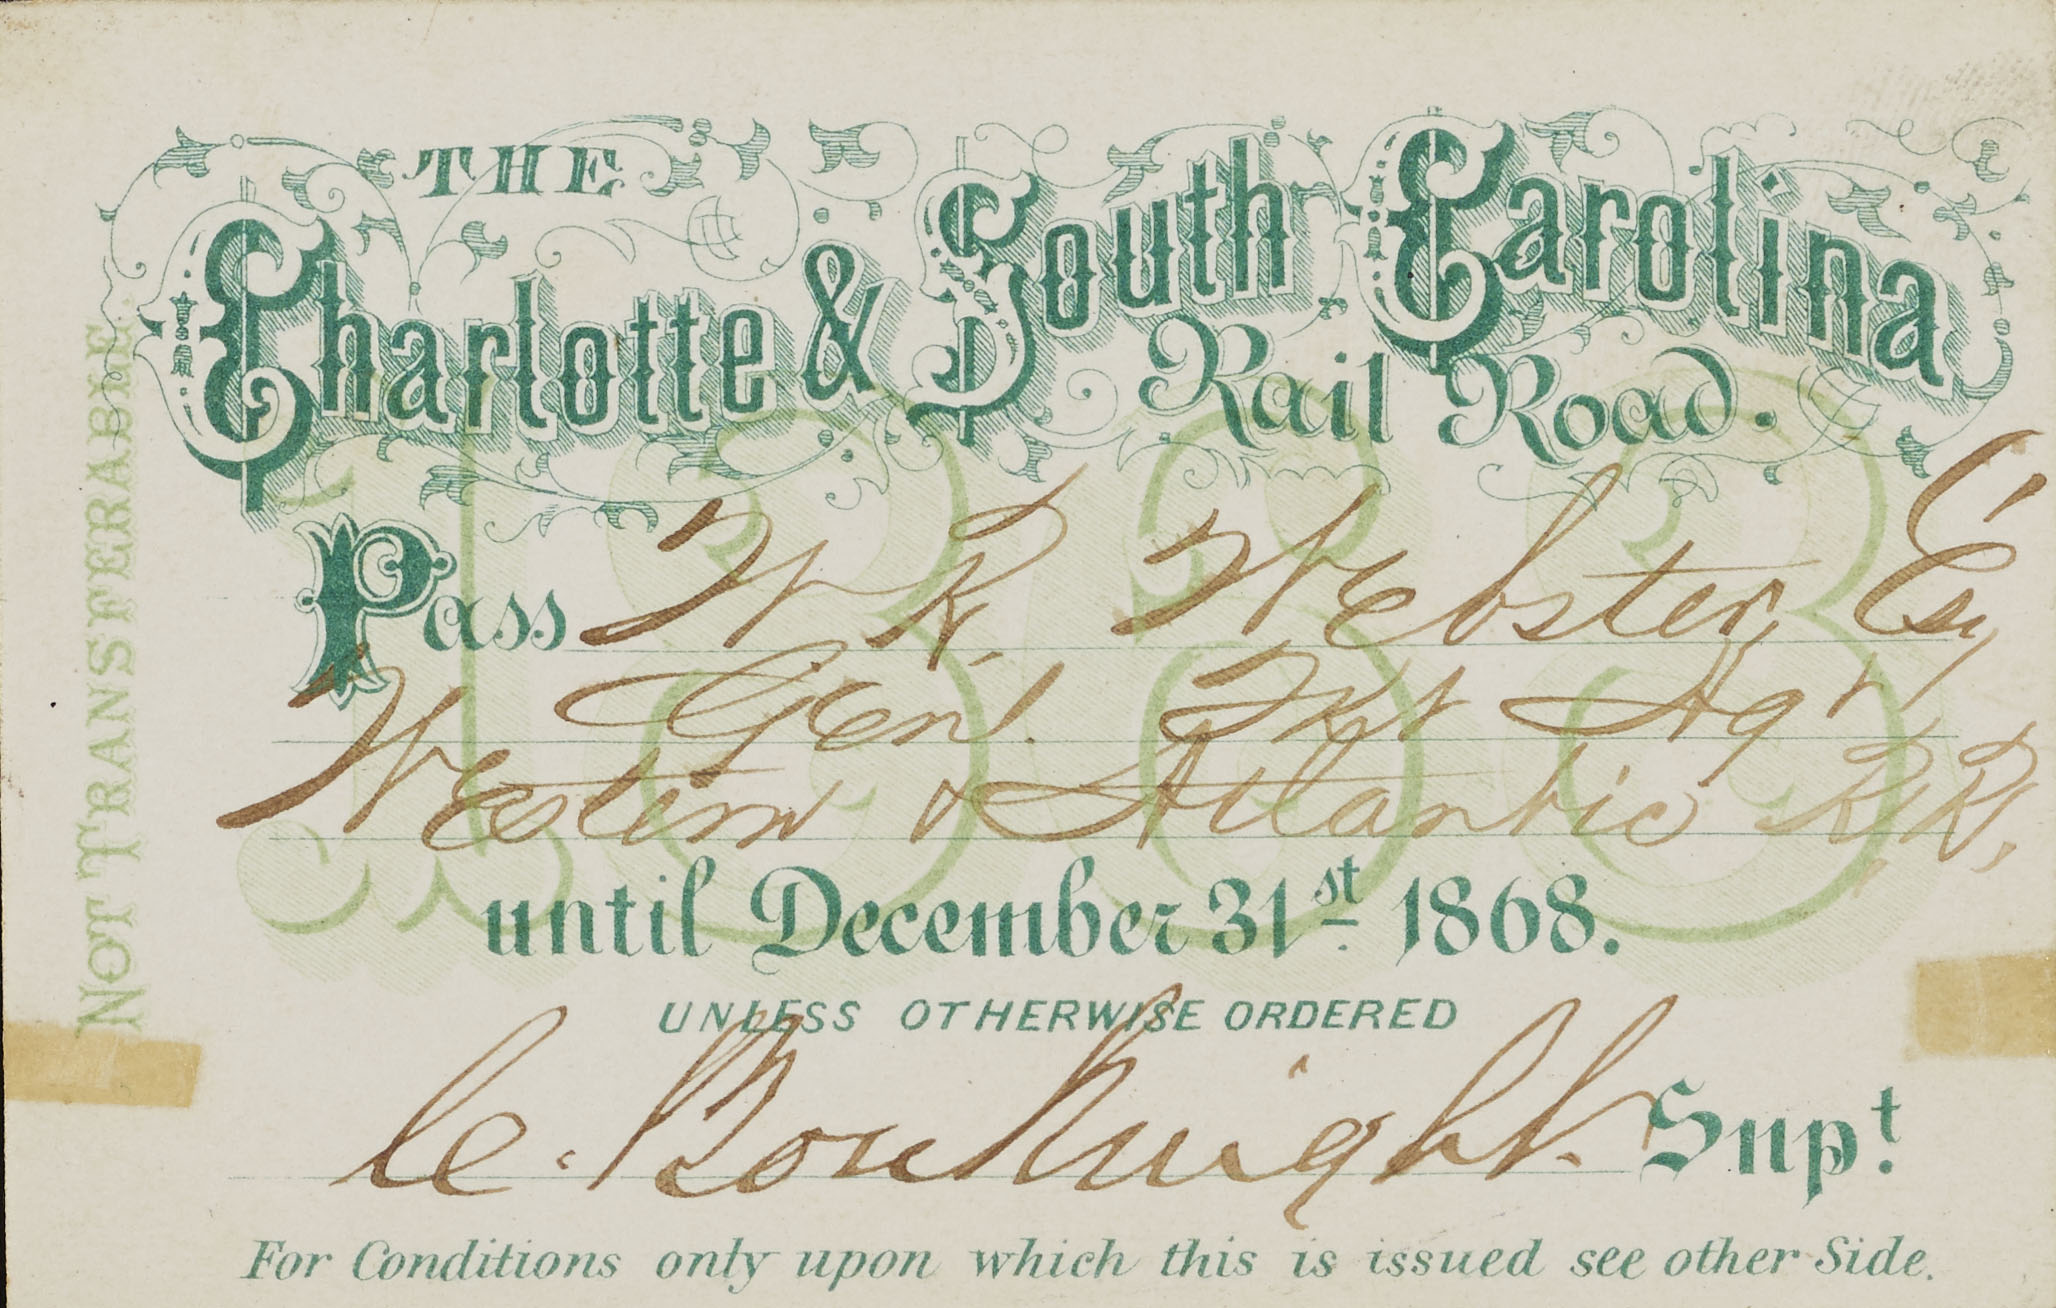 Charlotte and South Carolina Railroad pass